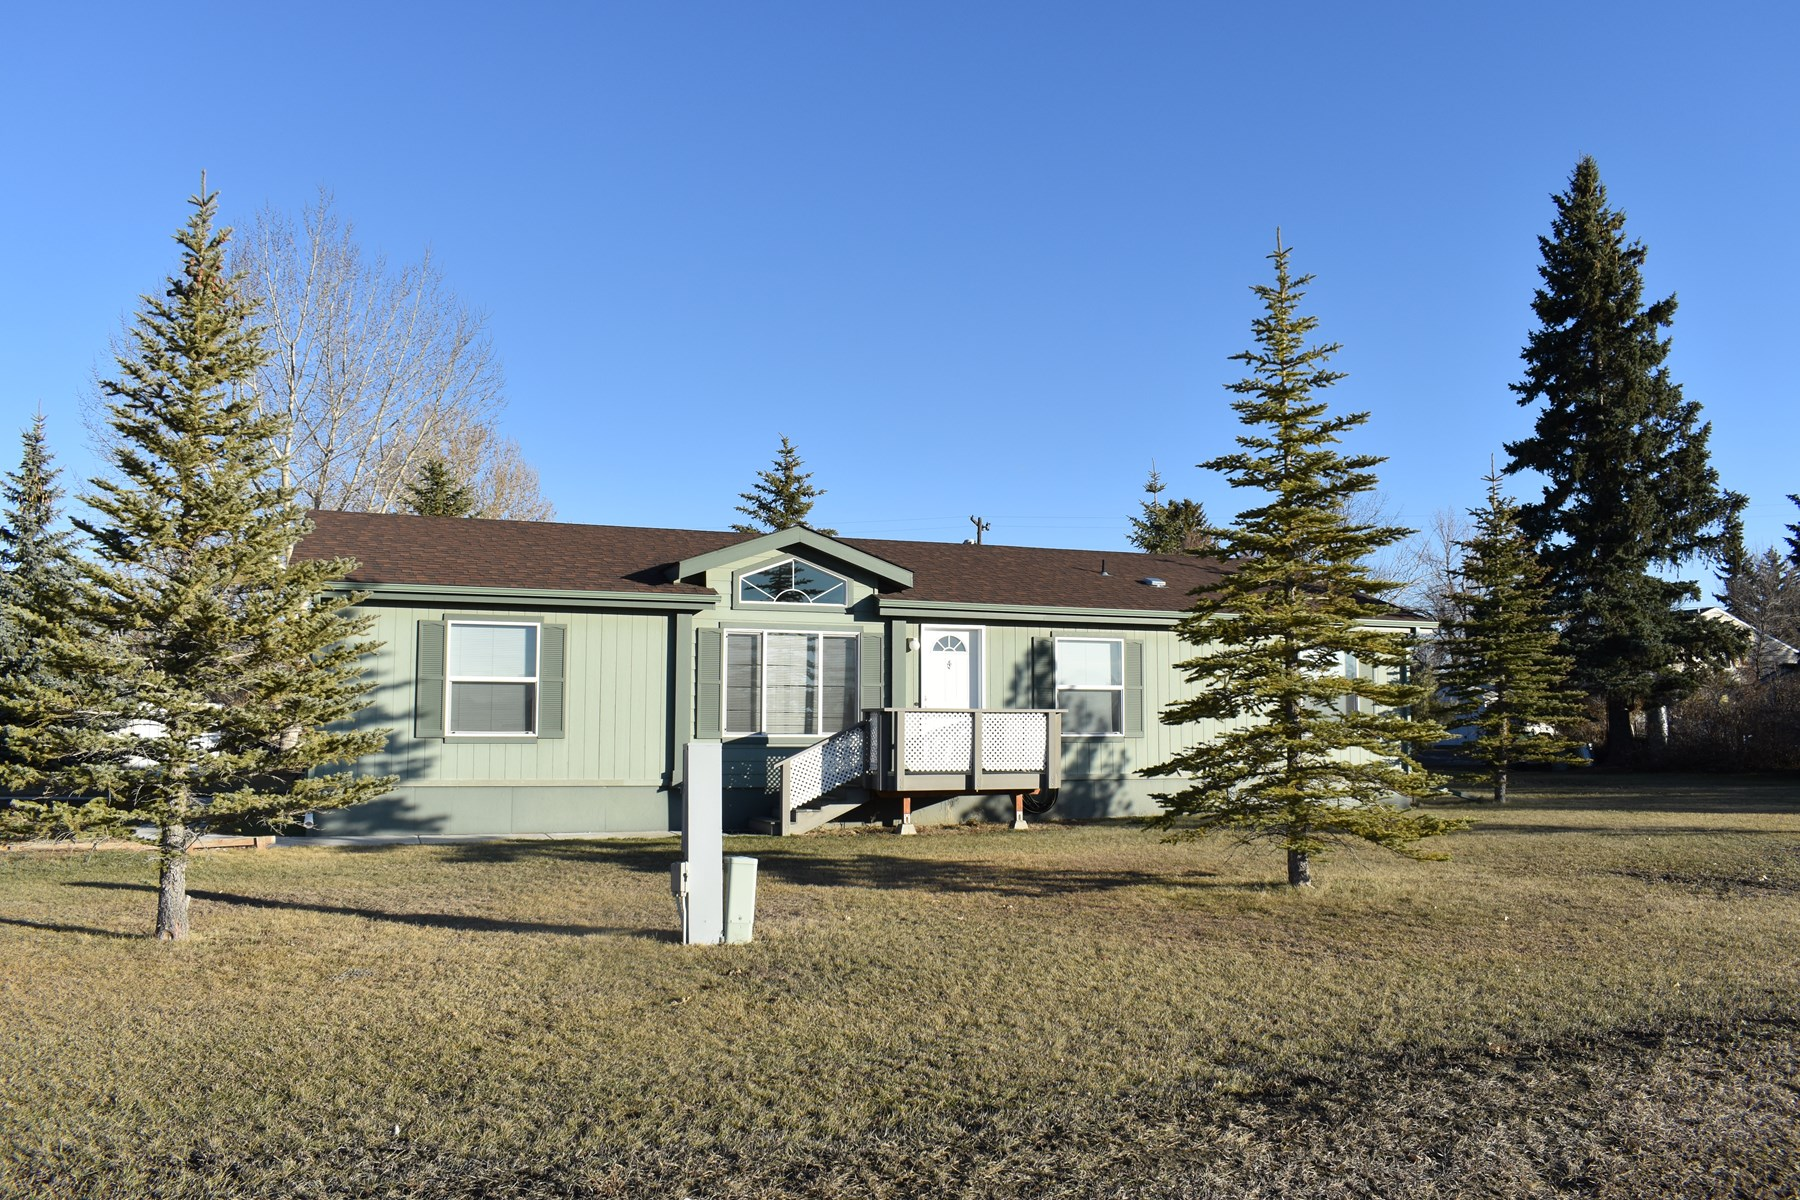 Home in town on 1/2 acre of land in Conrad, Montana